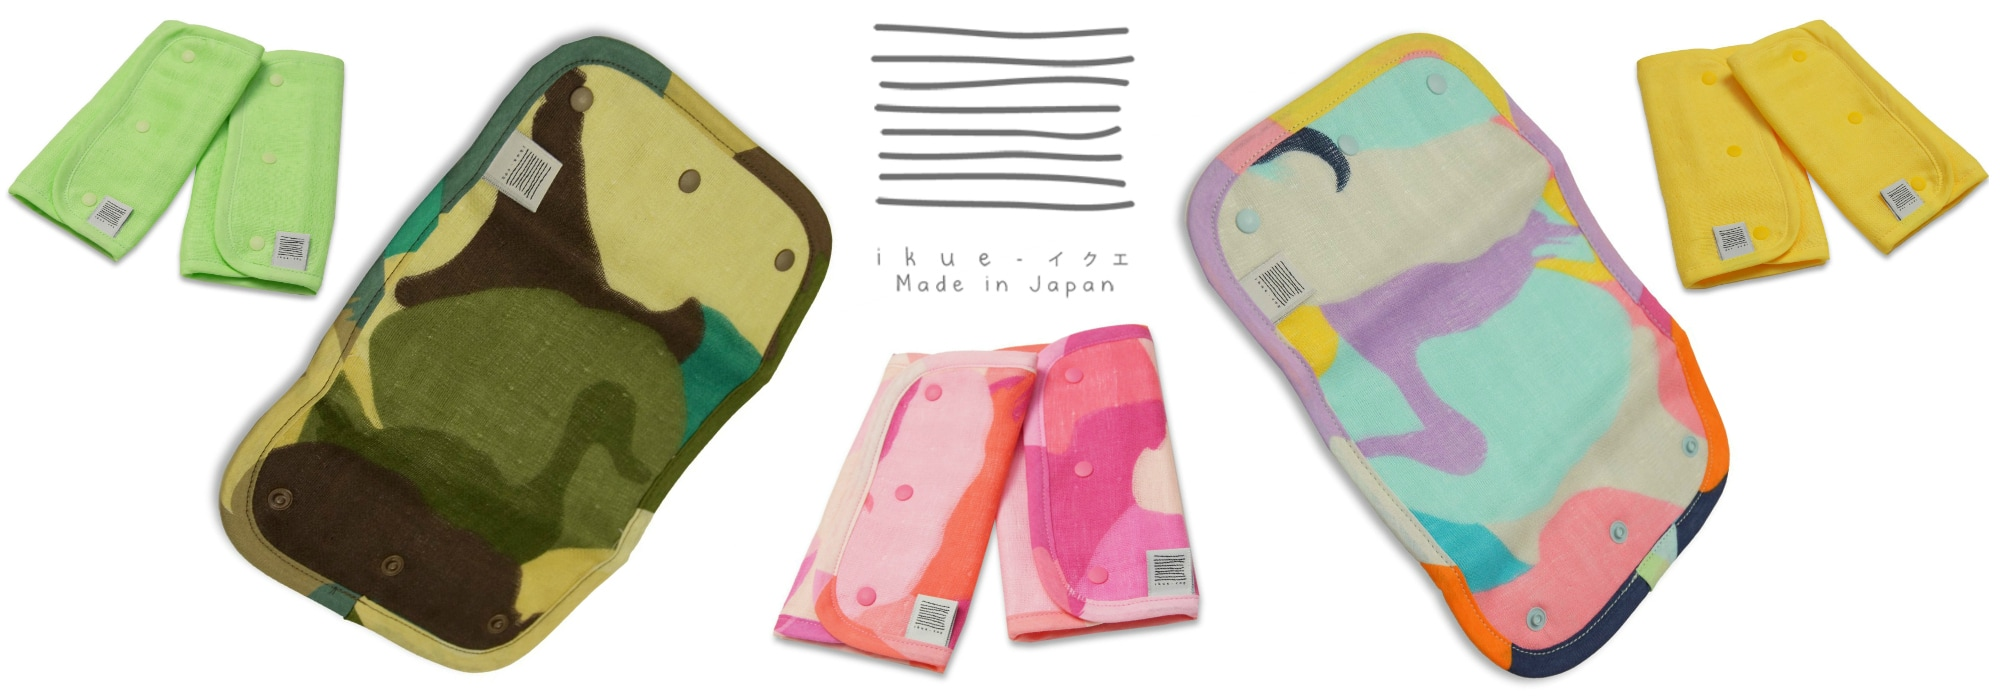 Win a set of Ikue baby belt strap covers in US Japan Fam's $500 value